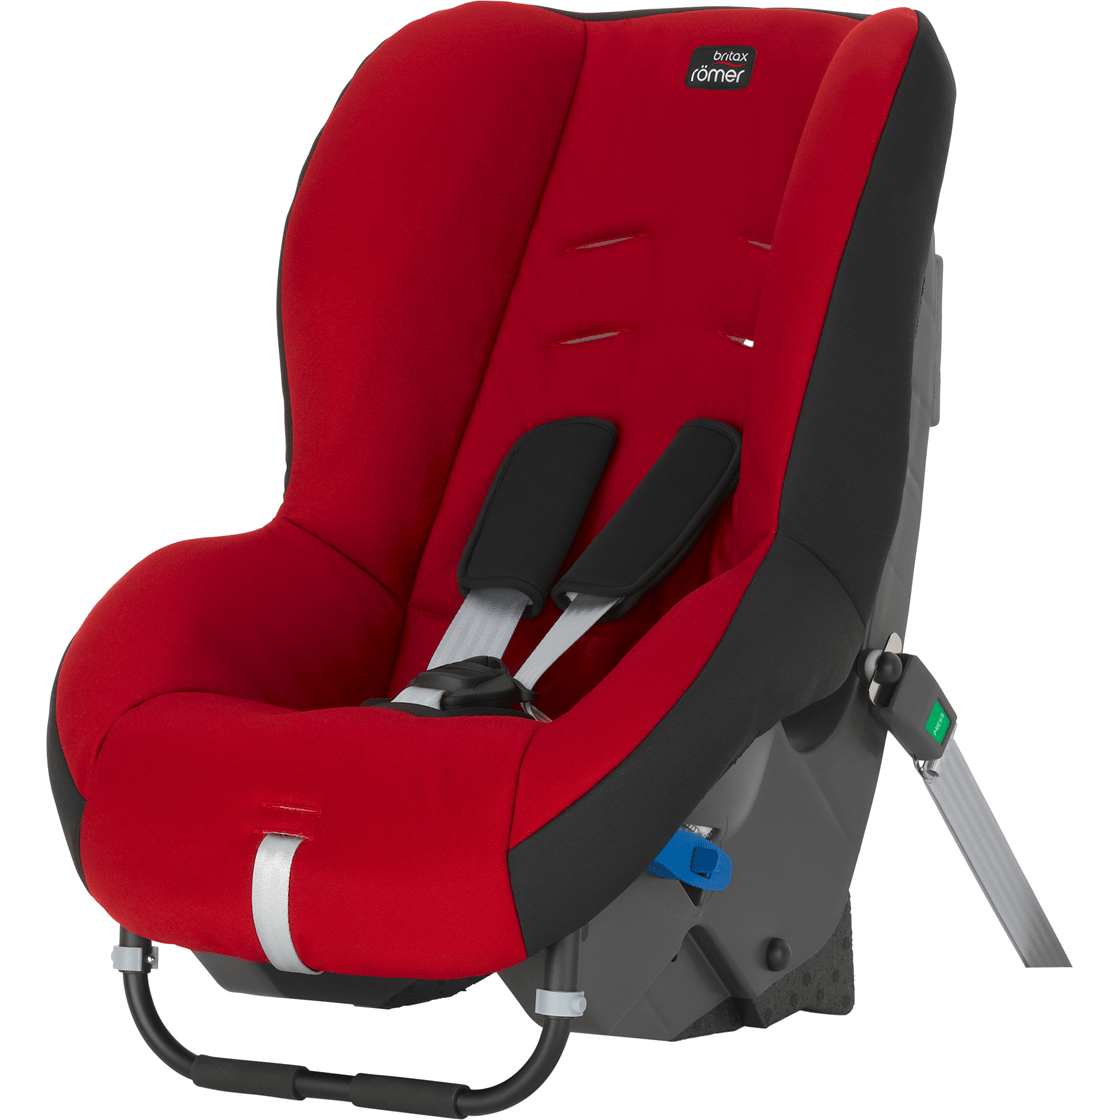 Maxi-cosi Auto-kindersitz Rubi Xp Poppy Red 2018 Maxi Cosi Baby Car Seat Weight Limit Carseatblog The Most